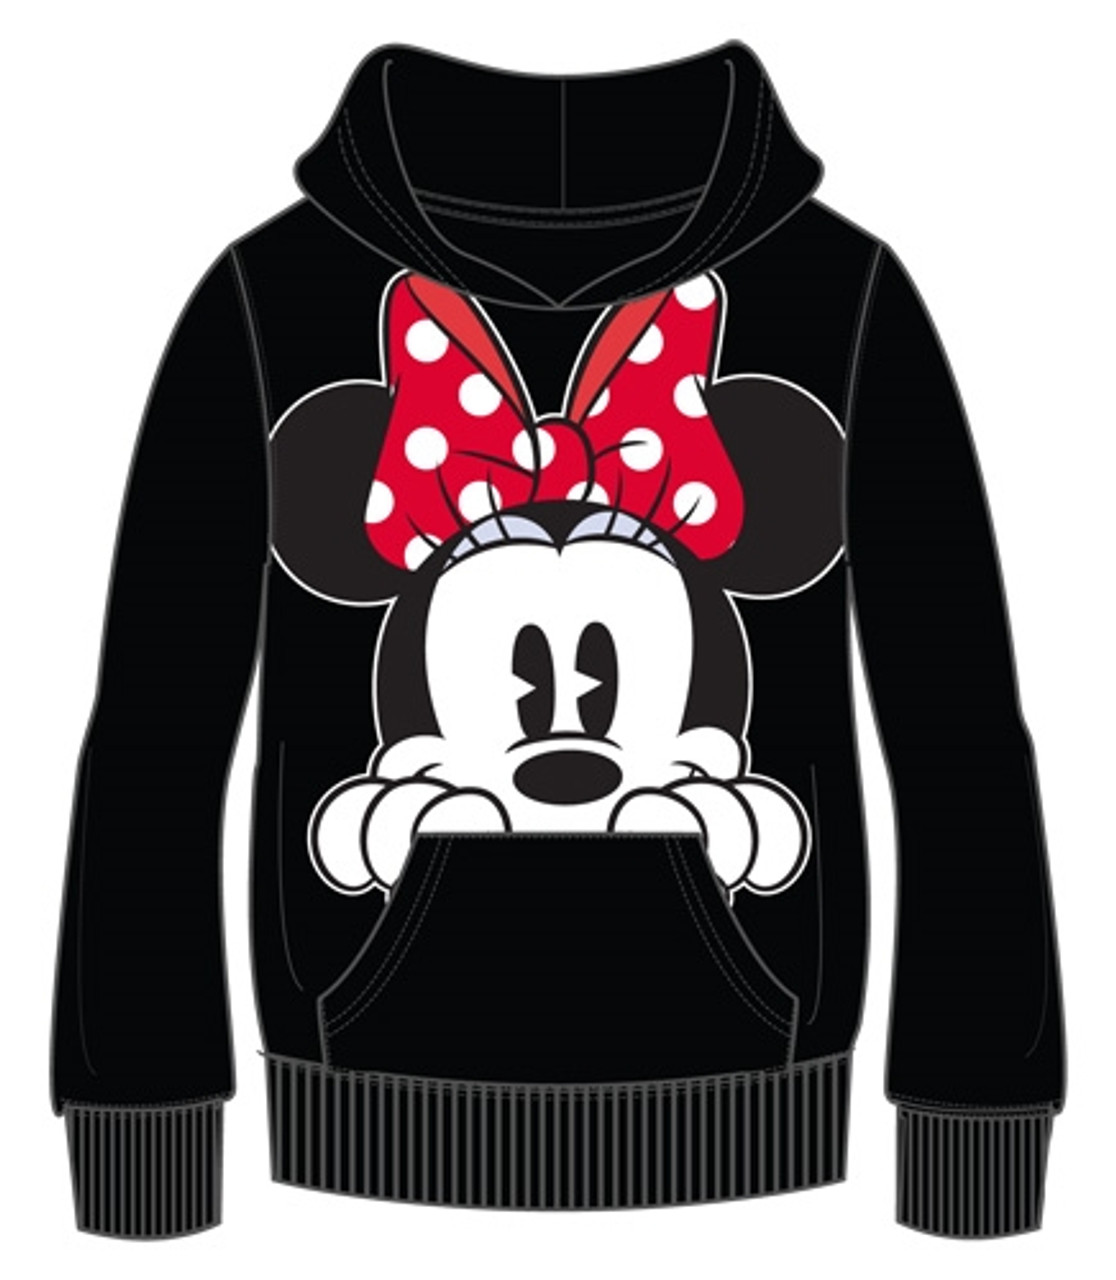 Plus Size Disney Womens Hoodie Minnie Mouse Peeking Pullover Sweatshirt Small